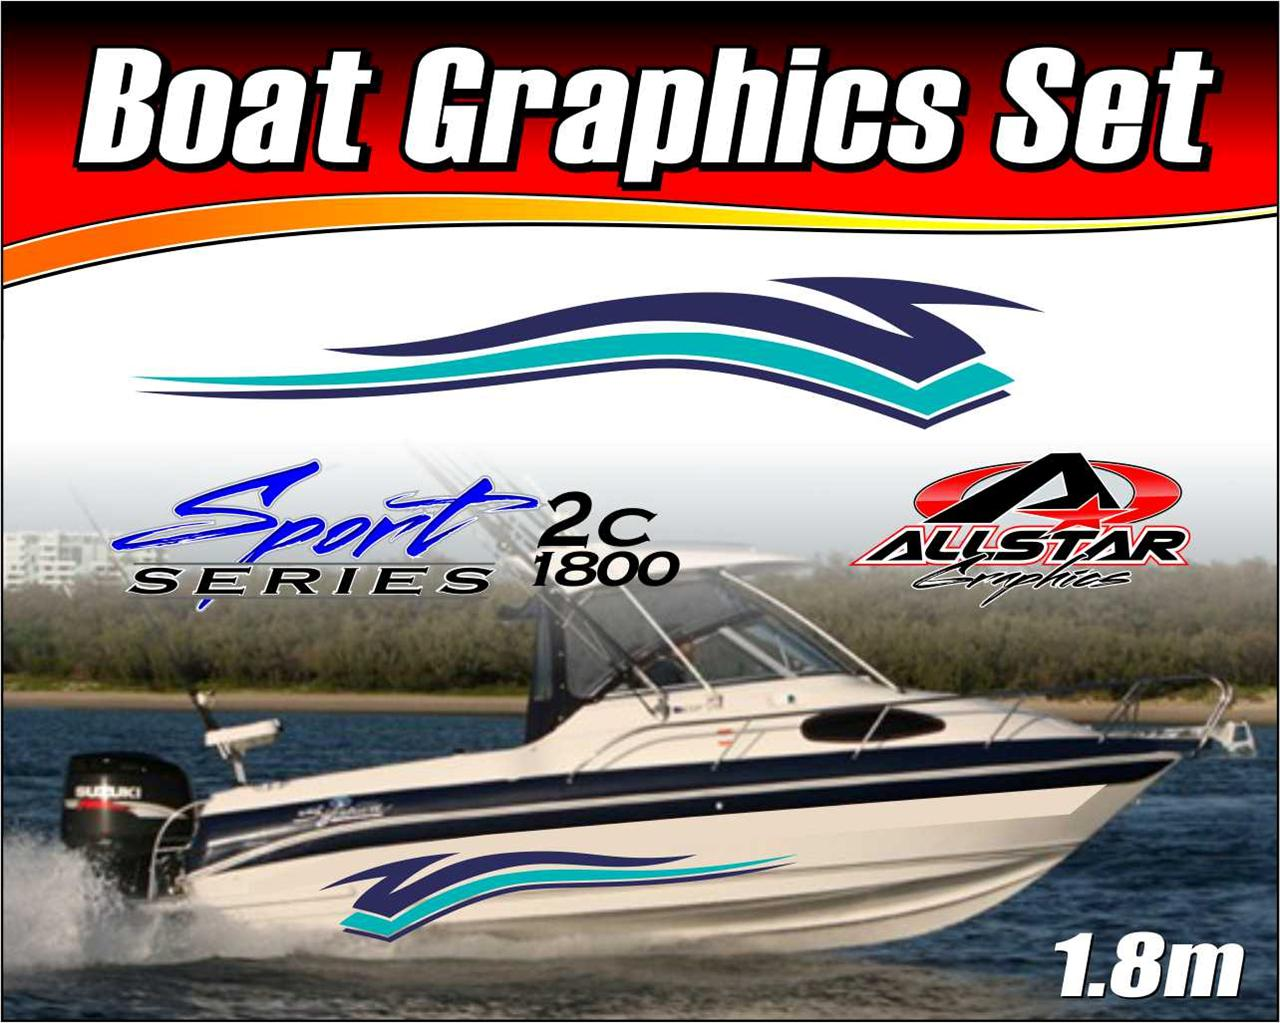 Boat-Graphic-Sticker-Kit-Vinyl-stripe-decal-for-Marine-or-Automotive-SS-2C1800